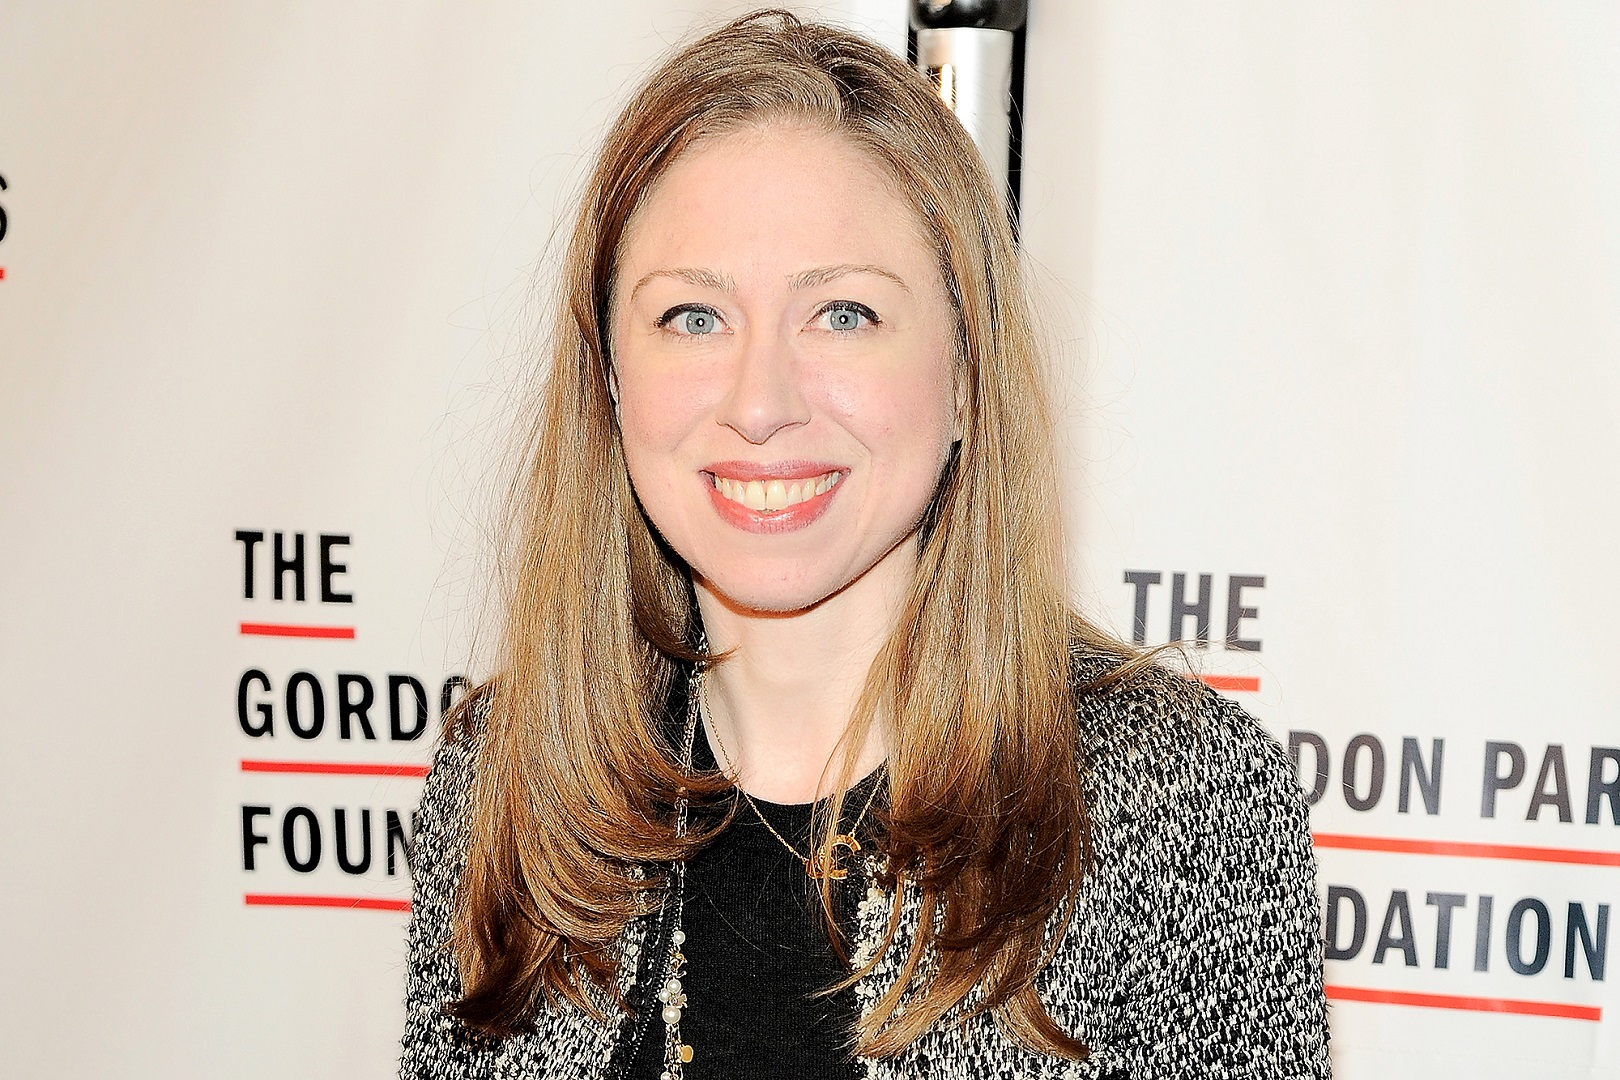 Chelsea Clinton Expecting Third Child: 'We Cannot Wait to Meet Our Newest Addition'